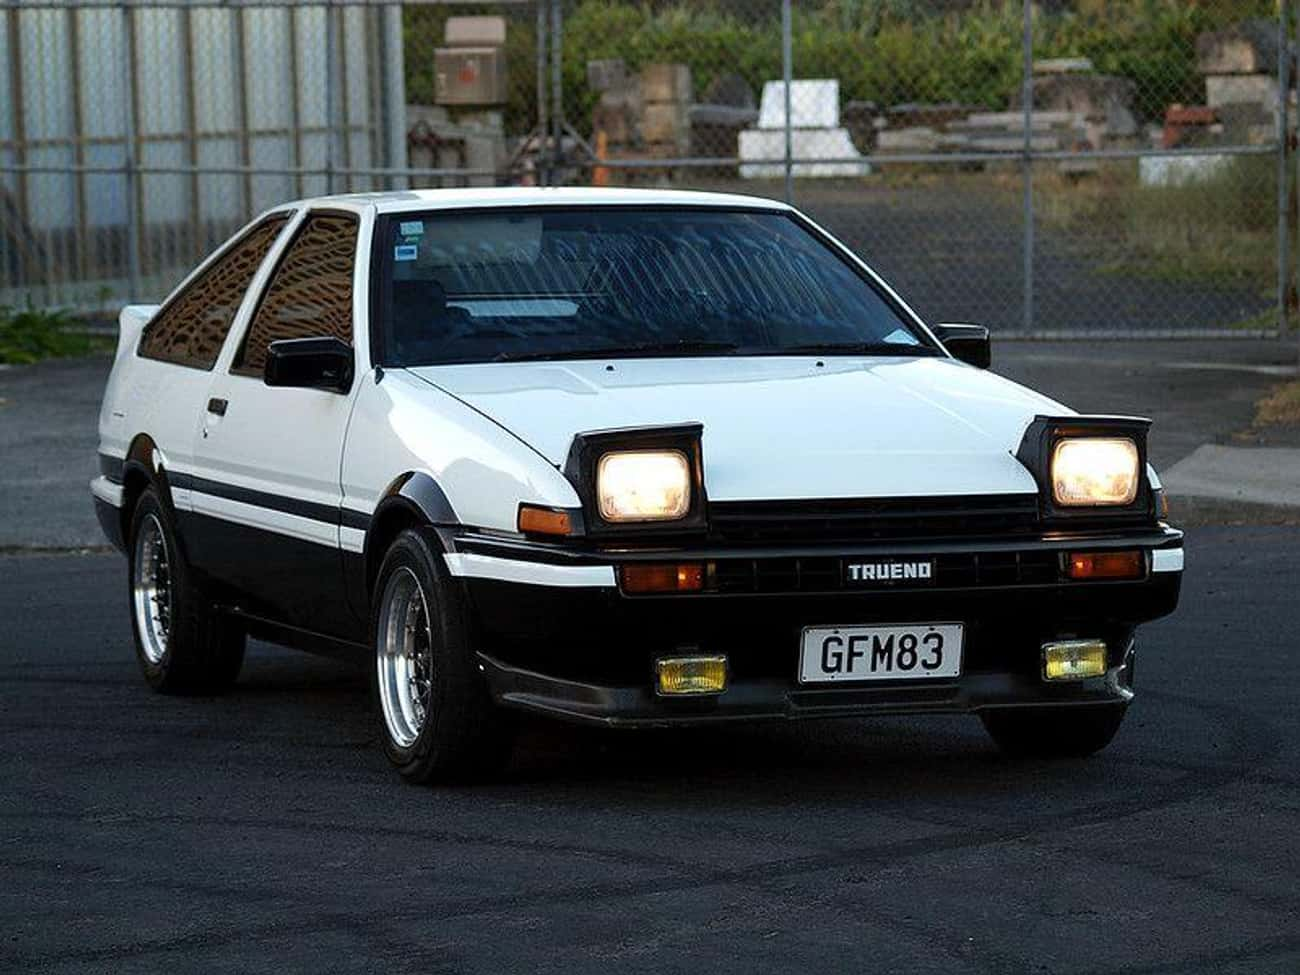 1st-5th Gen Toyota Corolla is listed (or ranked) 4 on the list The Best Project Cars For Beginners And Expert Mechanics